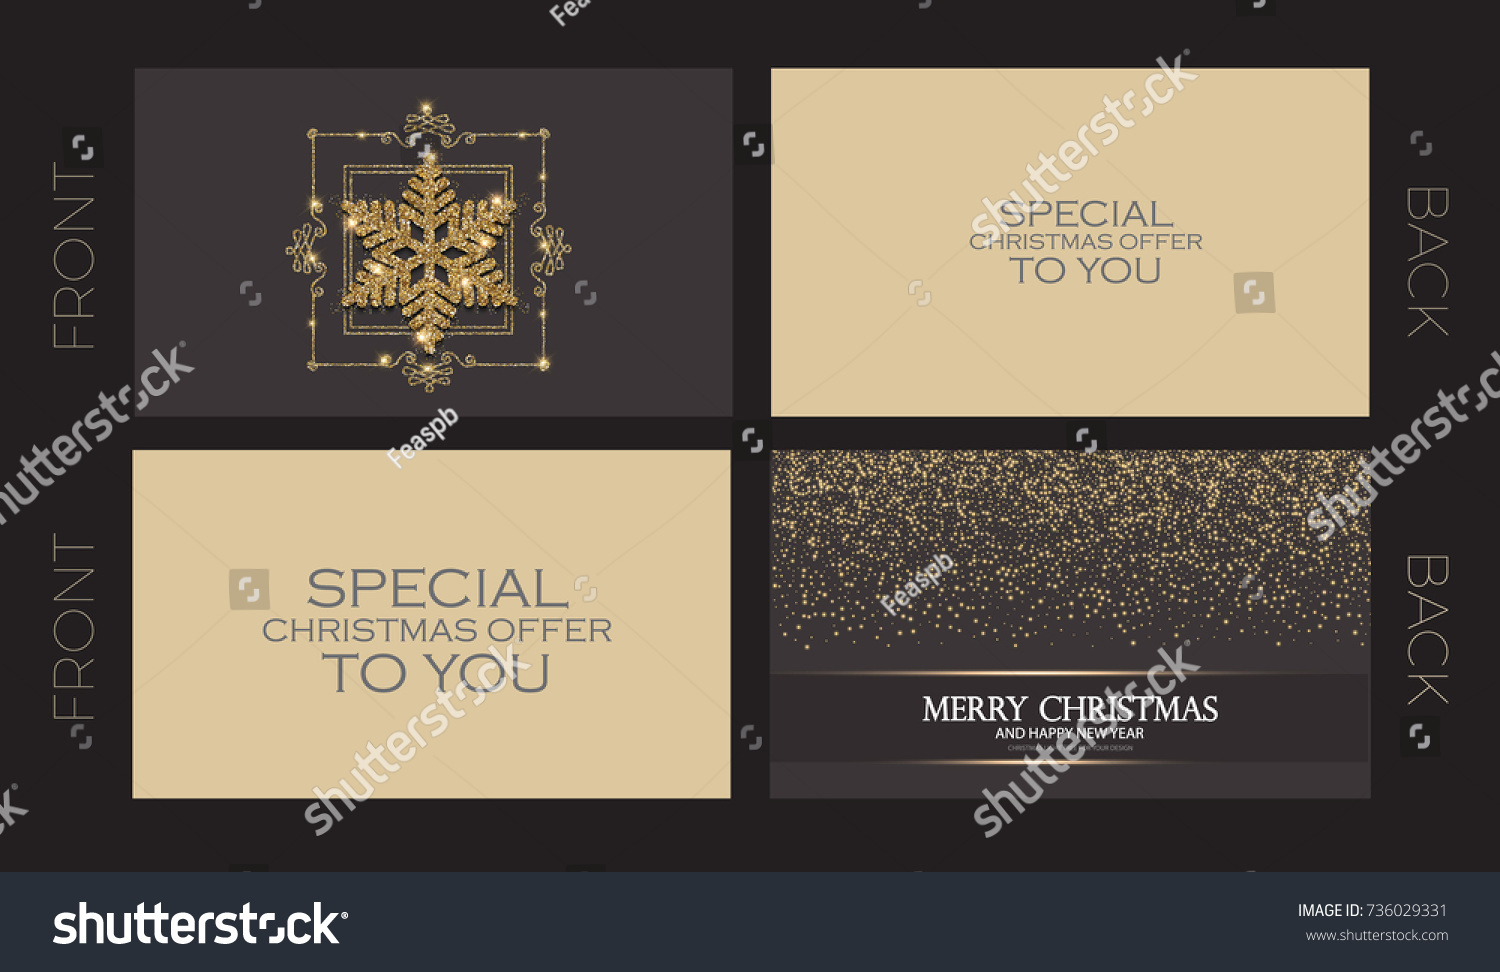 Merry christmas new year offer cards stock vector royalty free merry christmas and new year offer cards template business cards vip greetings m4hsunfo